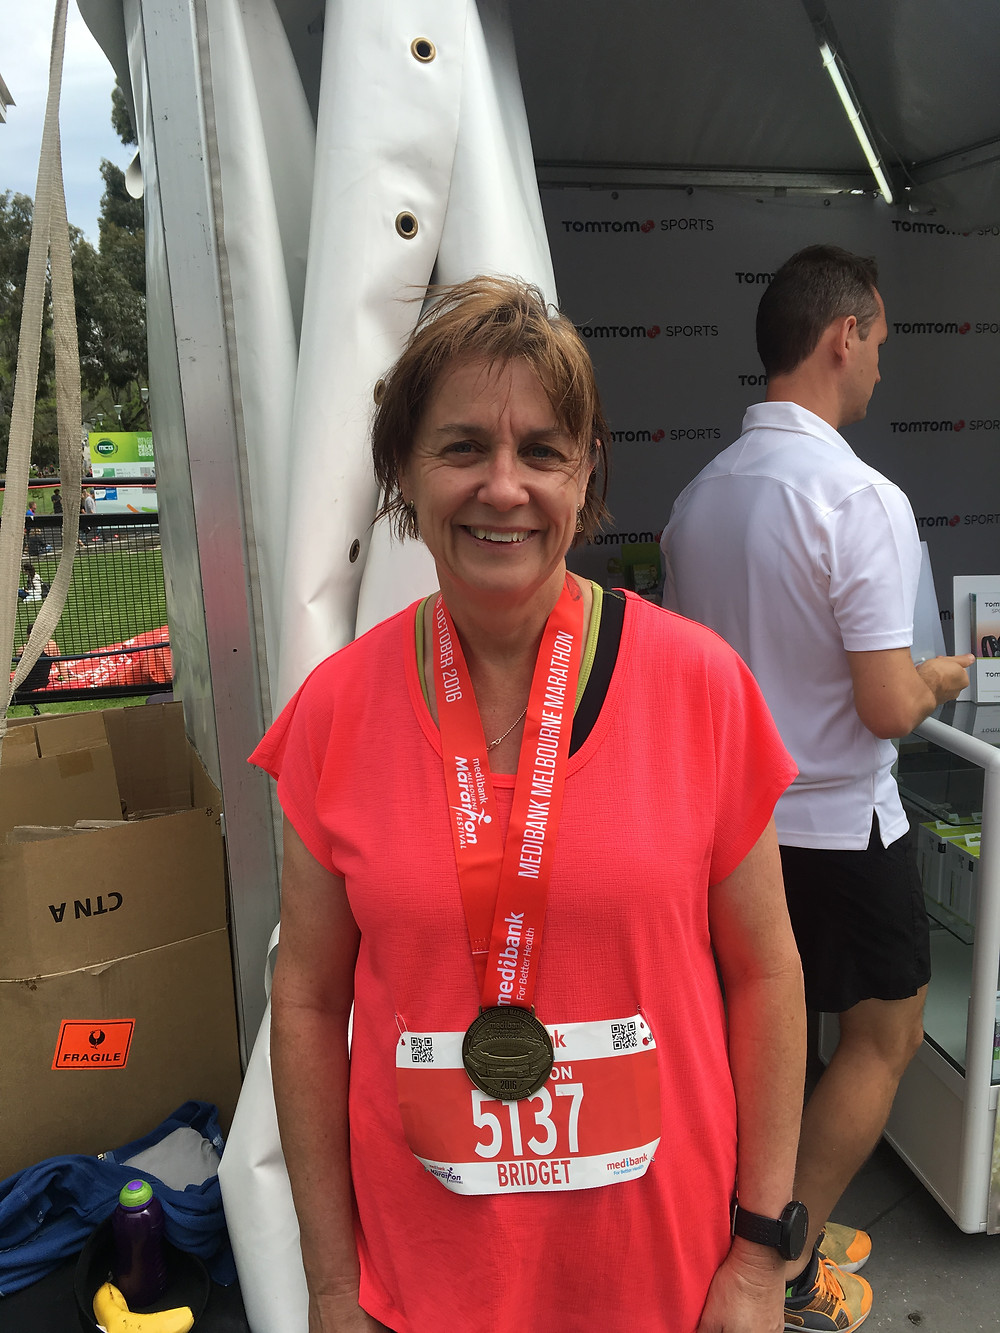 All smiles after a massive marathon personal best